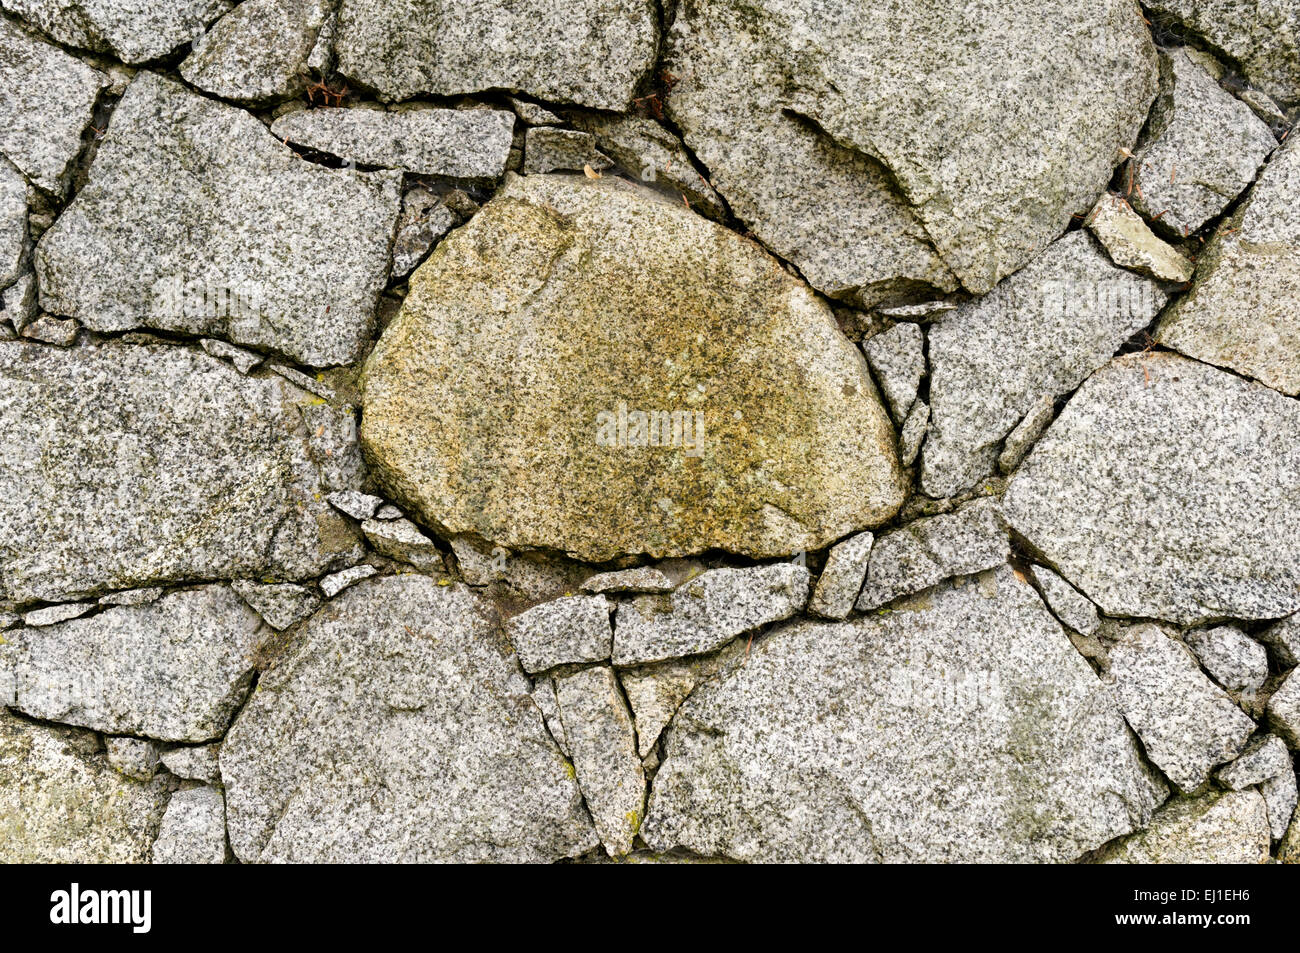 Close-up of a dry stone wall with chinking stones Stock Photo